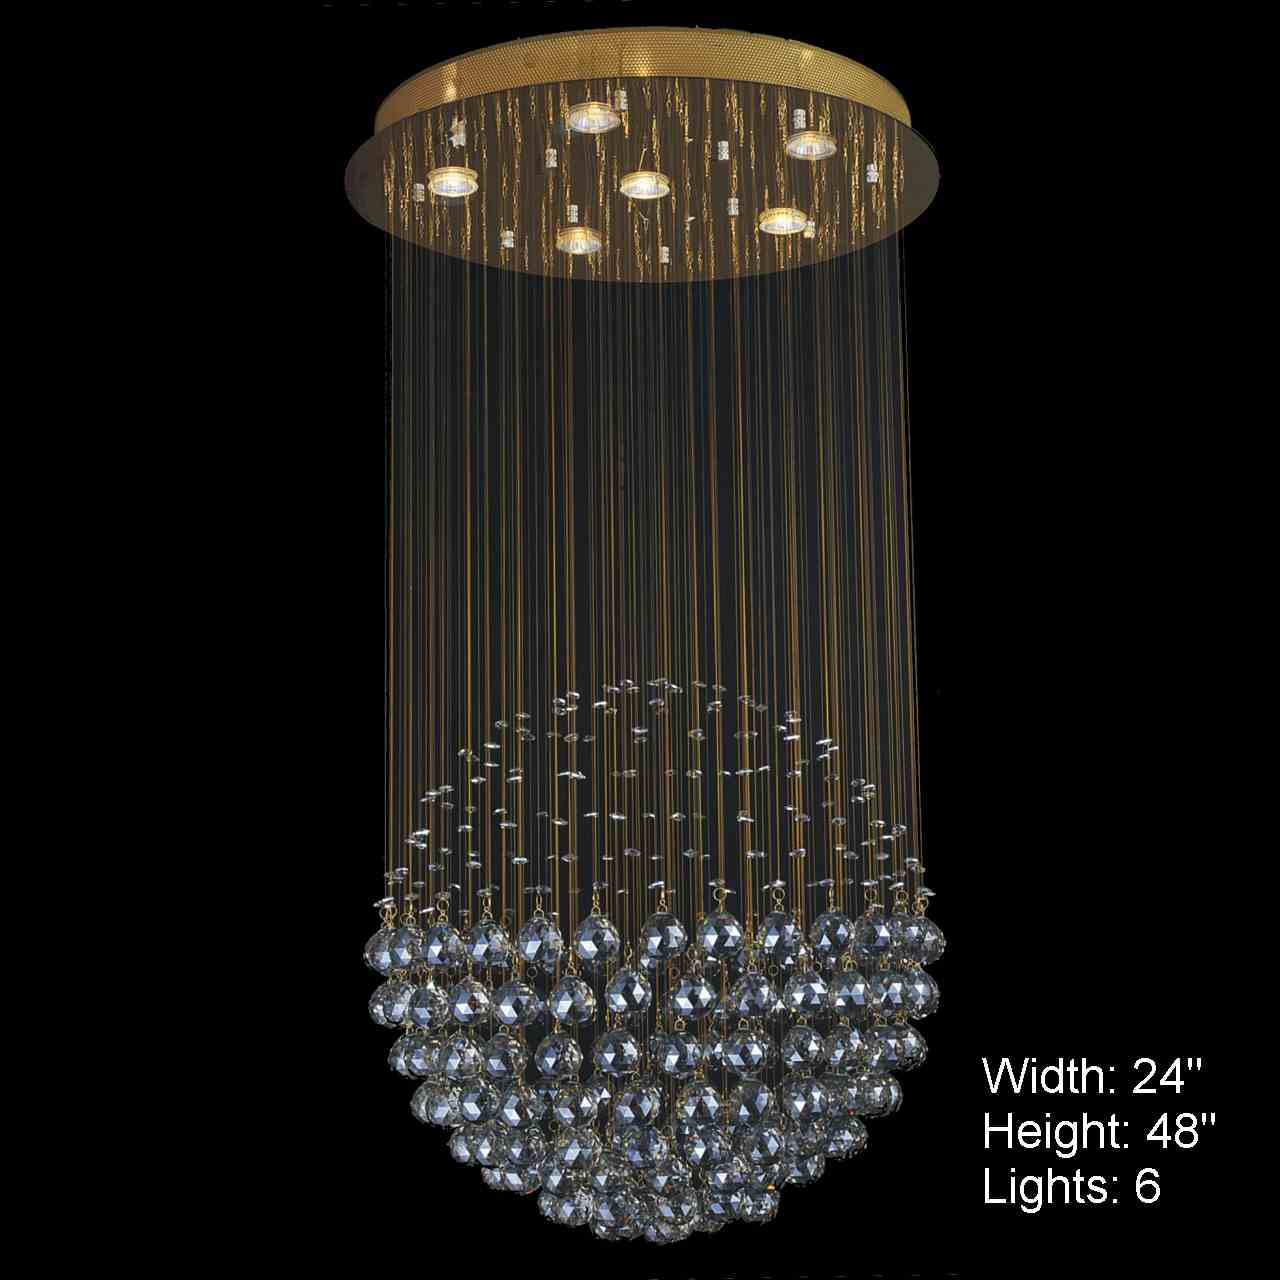 Brizzo lighting stores sphere modern crystal chandelier large picture of sphere modern crystal chandelier large mirror stainless steel base 6 lights aloadofball Choice Image